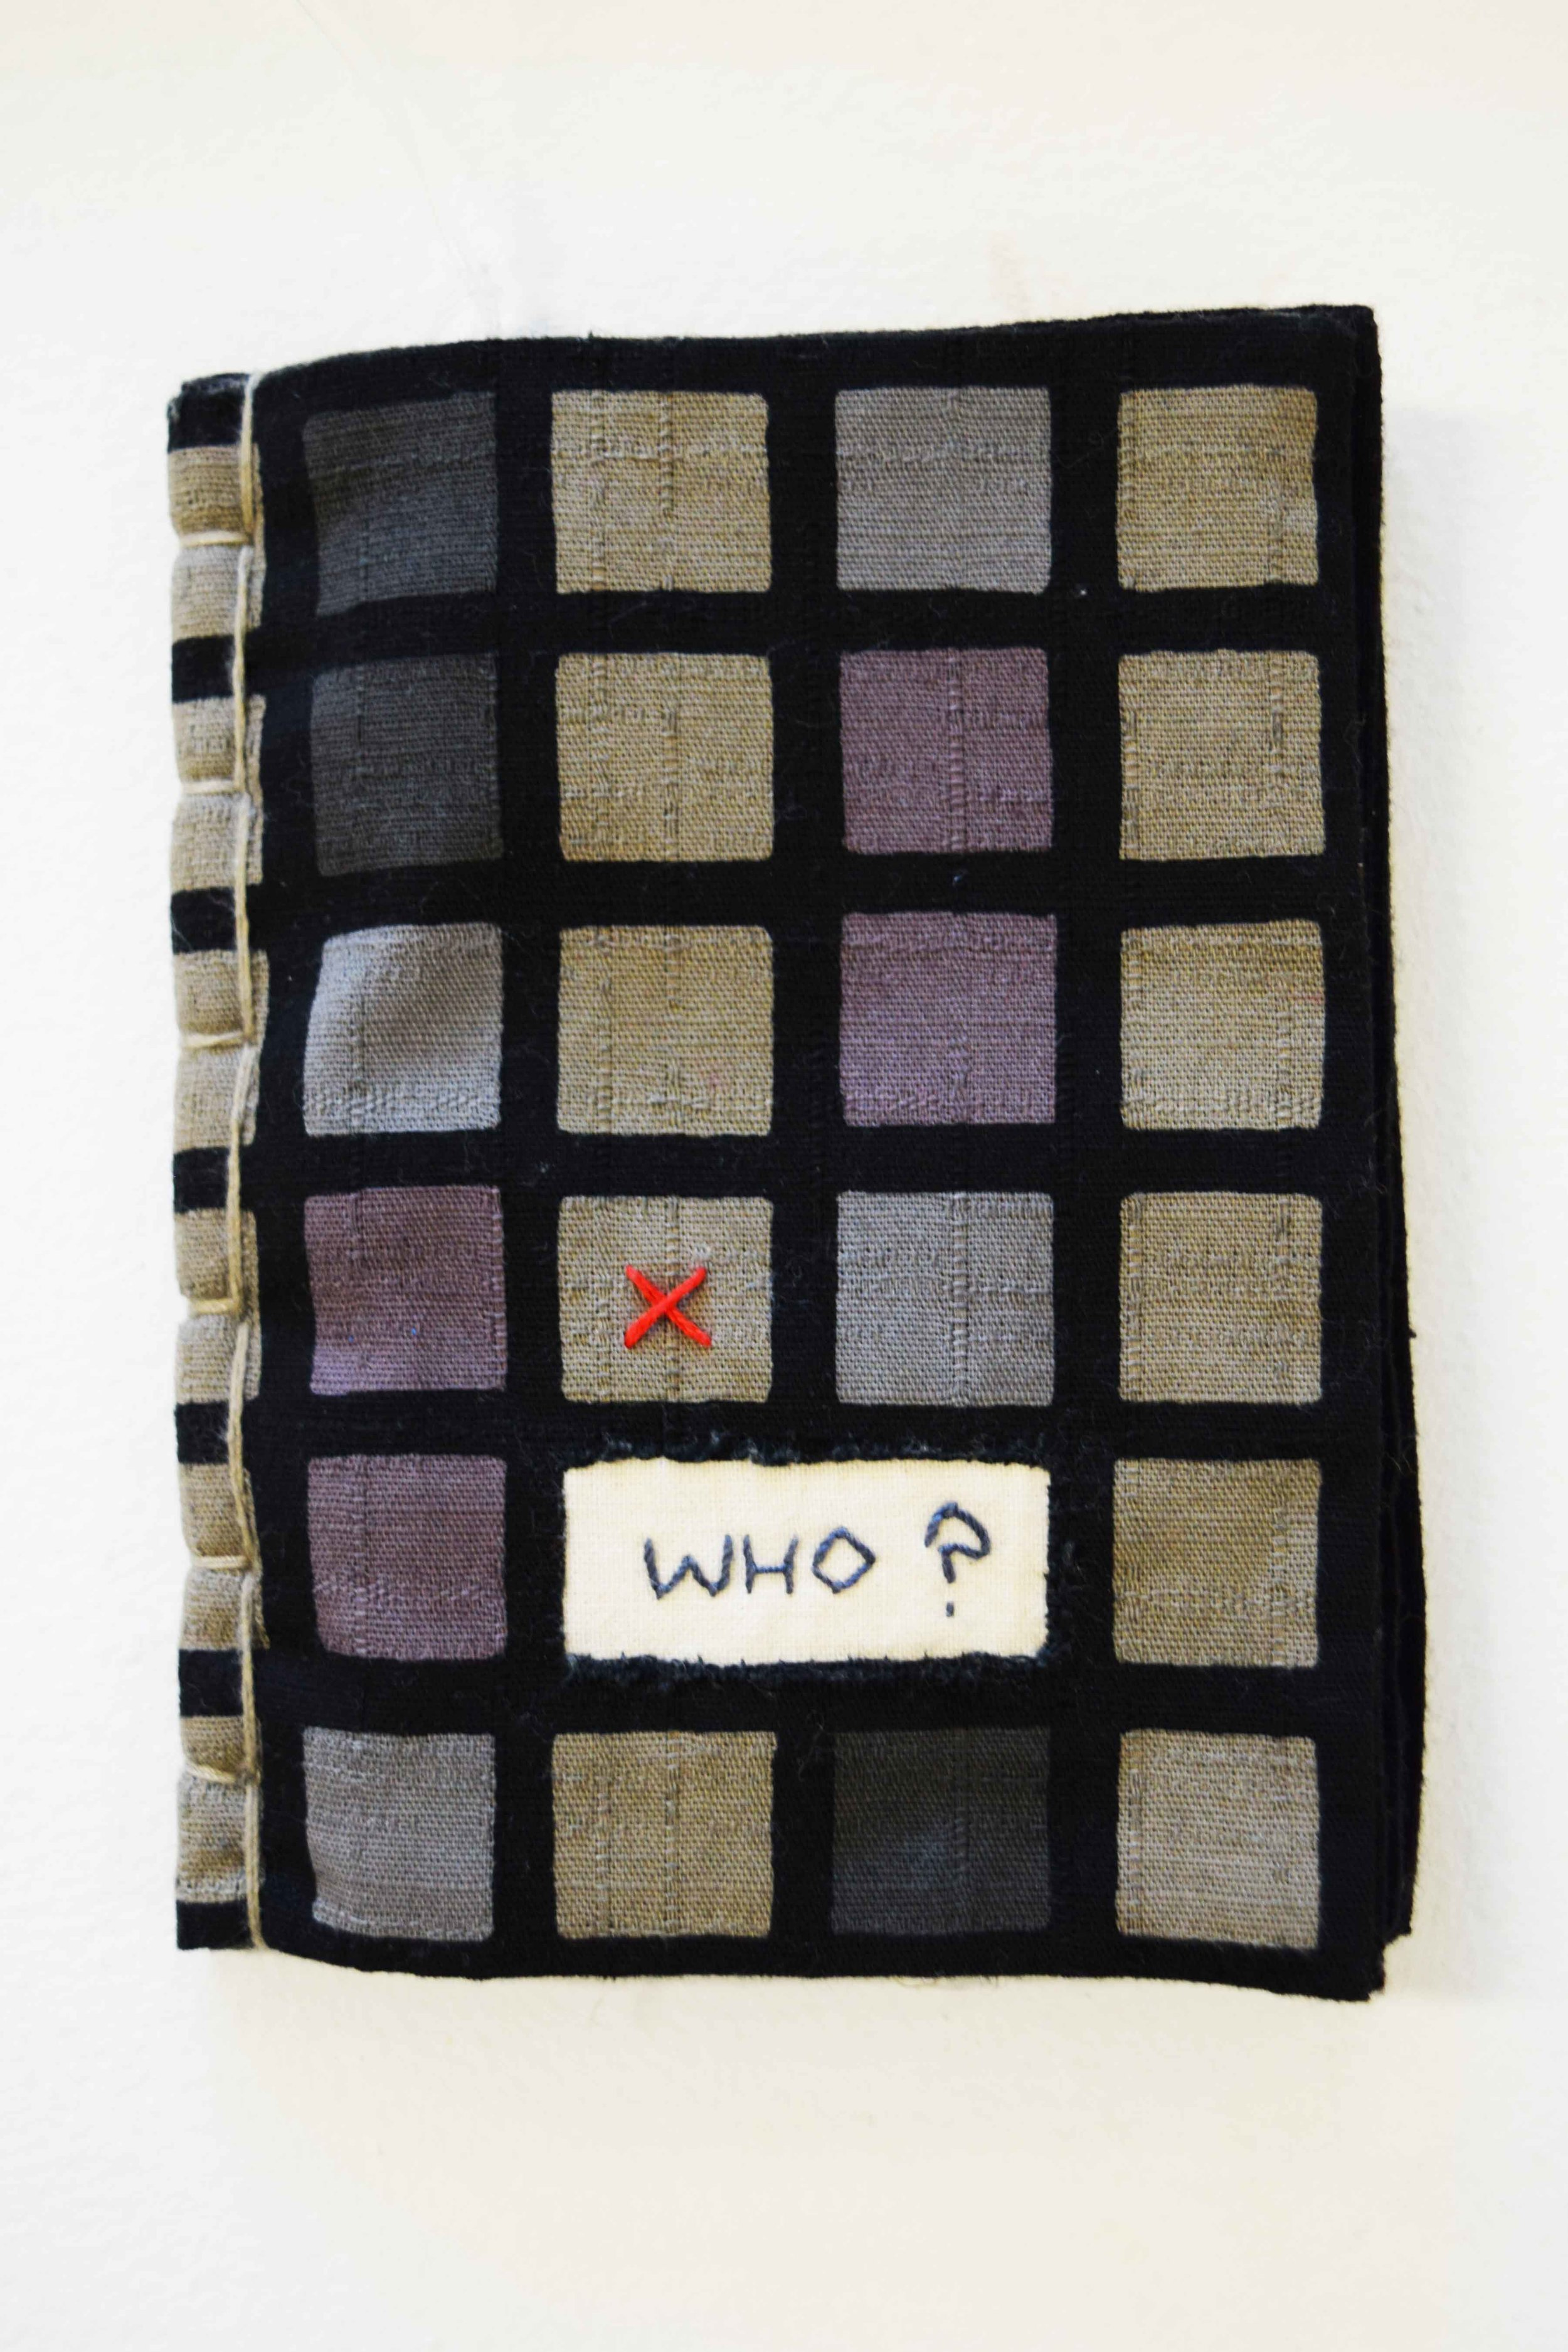 40. Anne Williams,  Who? , hand stitched cotton and hemp, applique, book binding, 14 x 10.5 cm $110